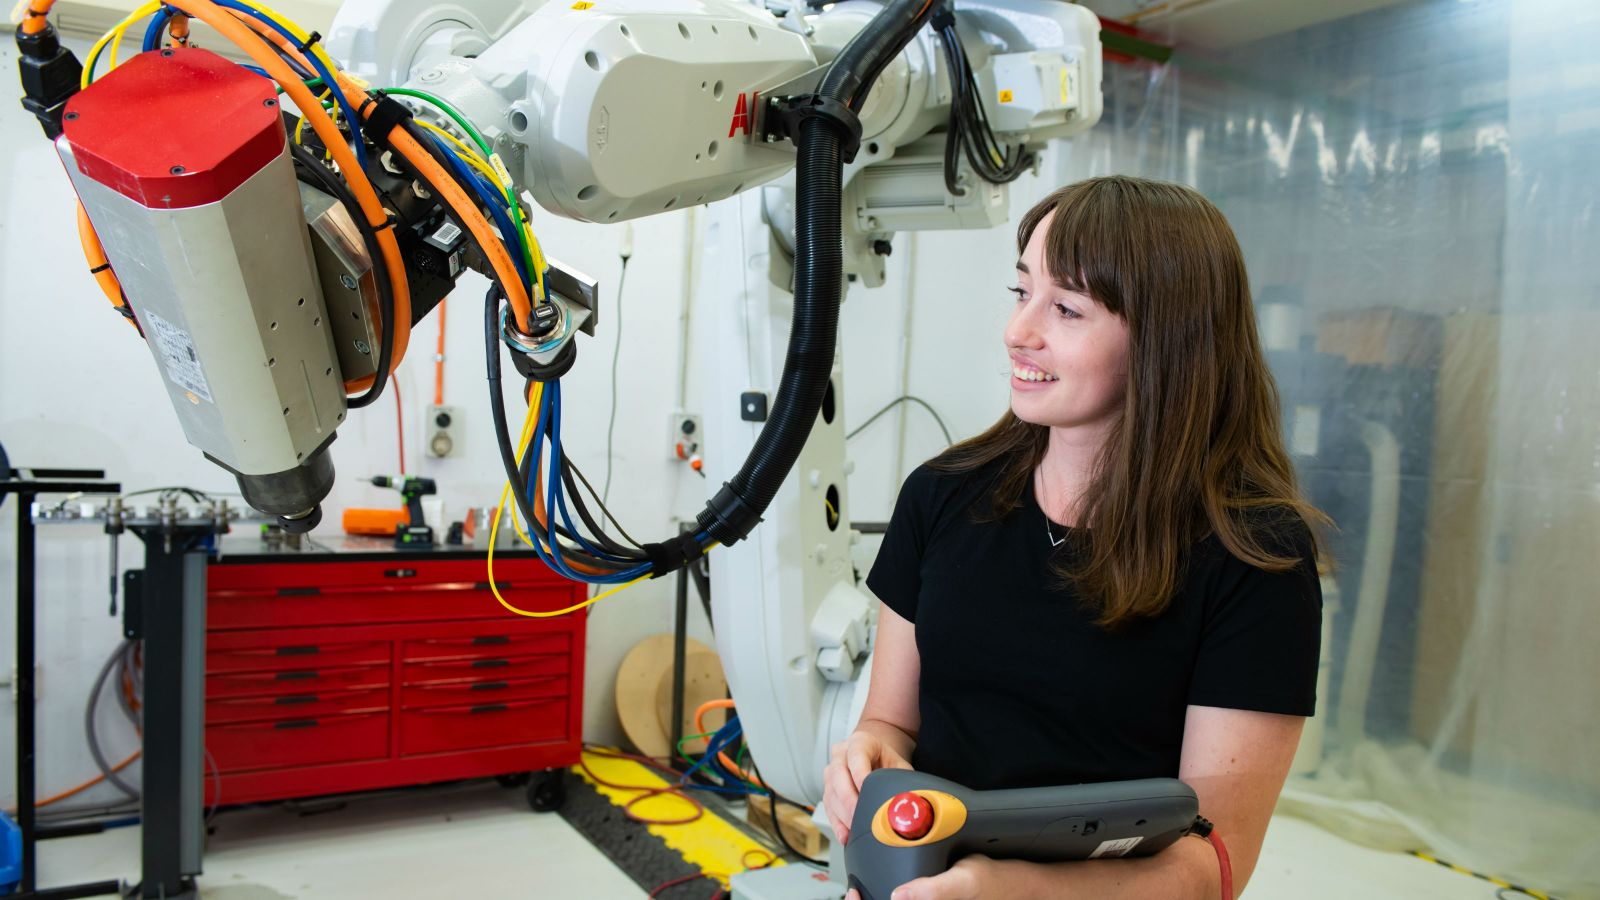 Student operates robotic arm